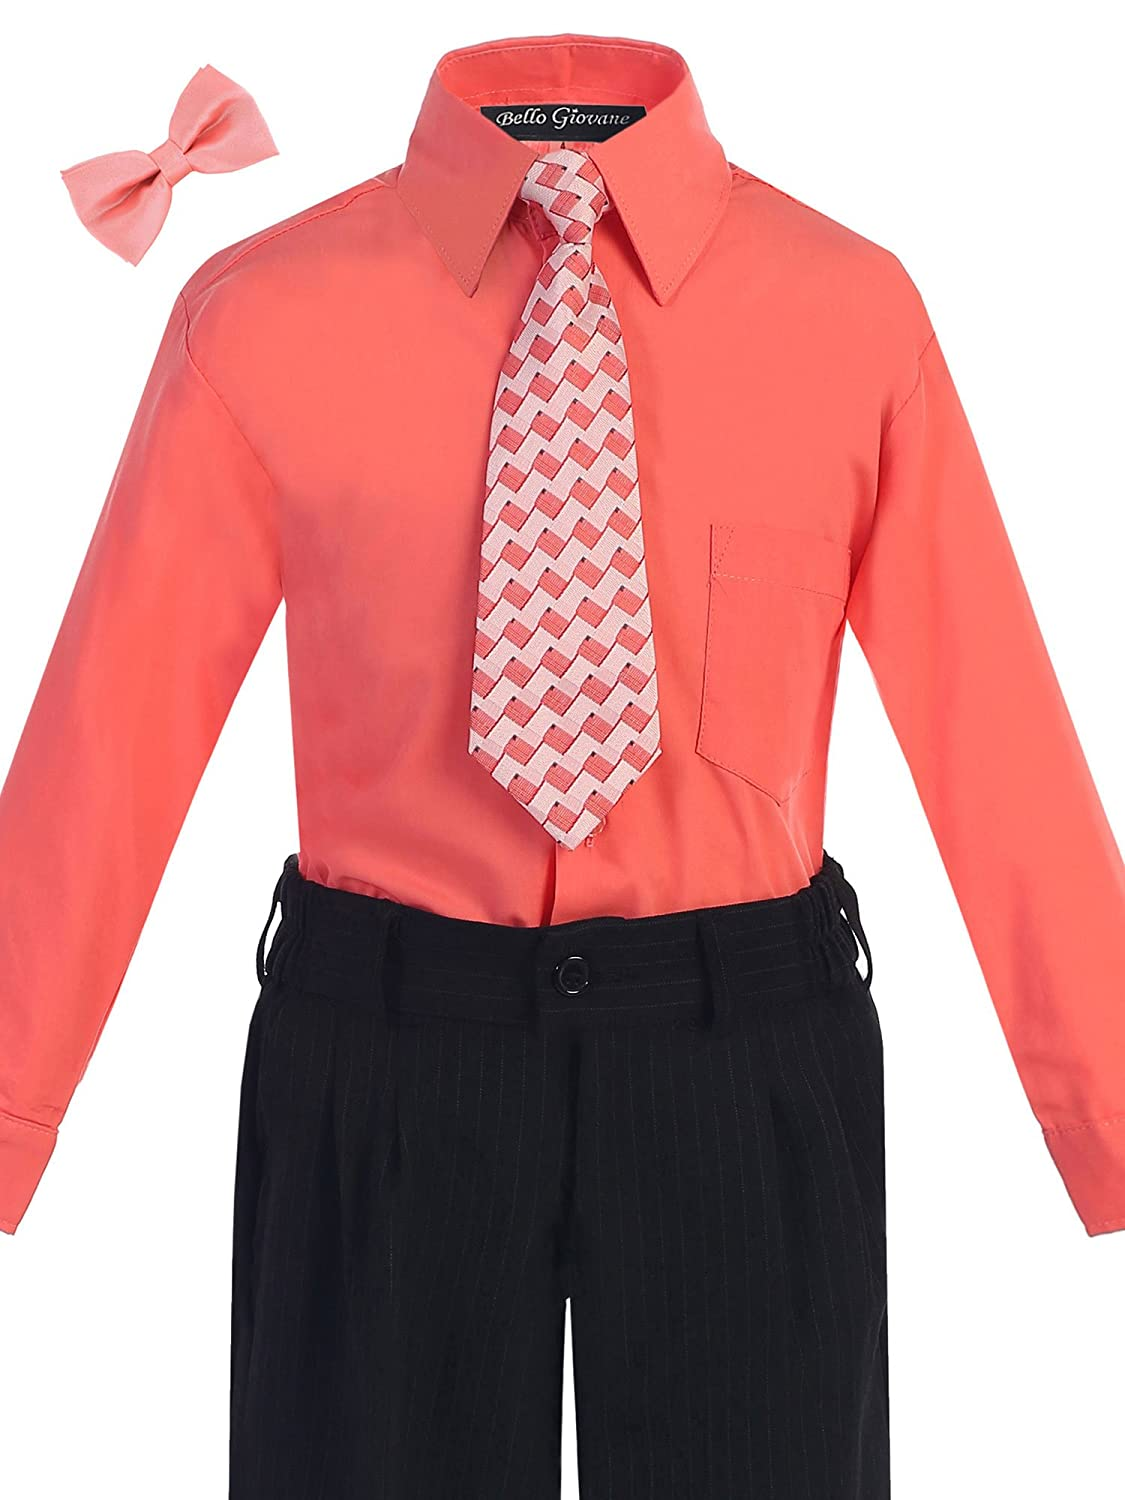 Bello Giovane Boys Coral Dress Shirt with Tie Set (Free Bow Tie)